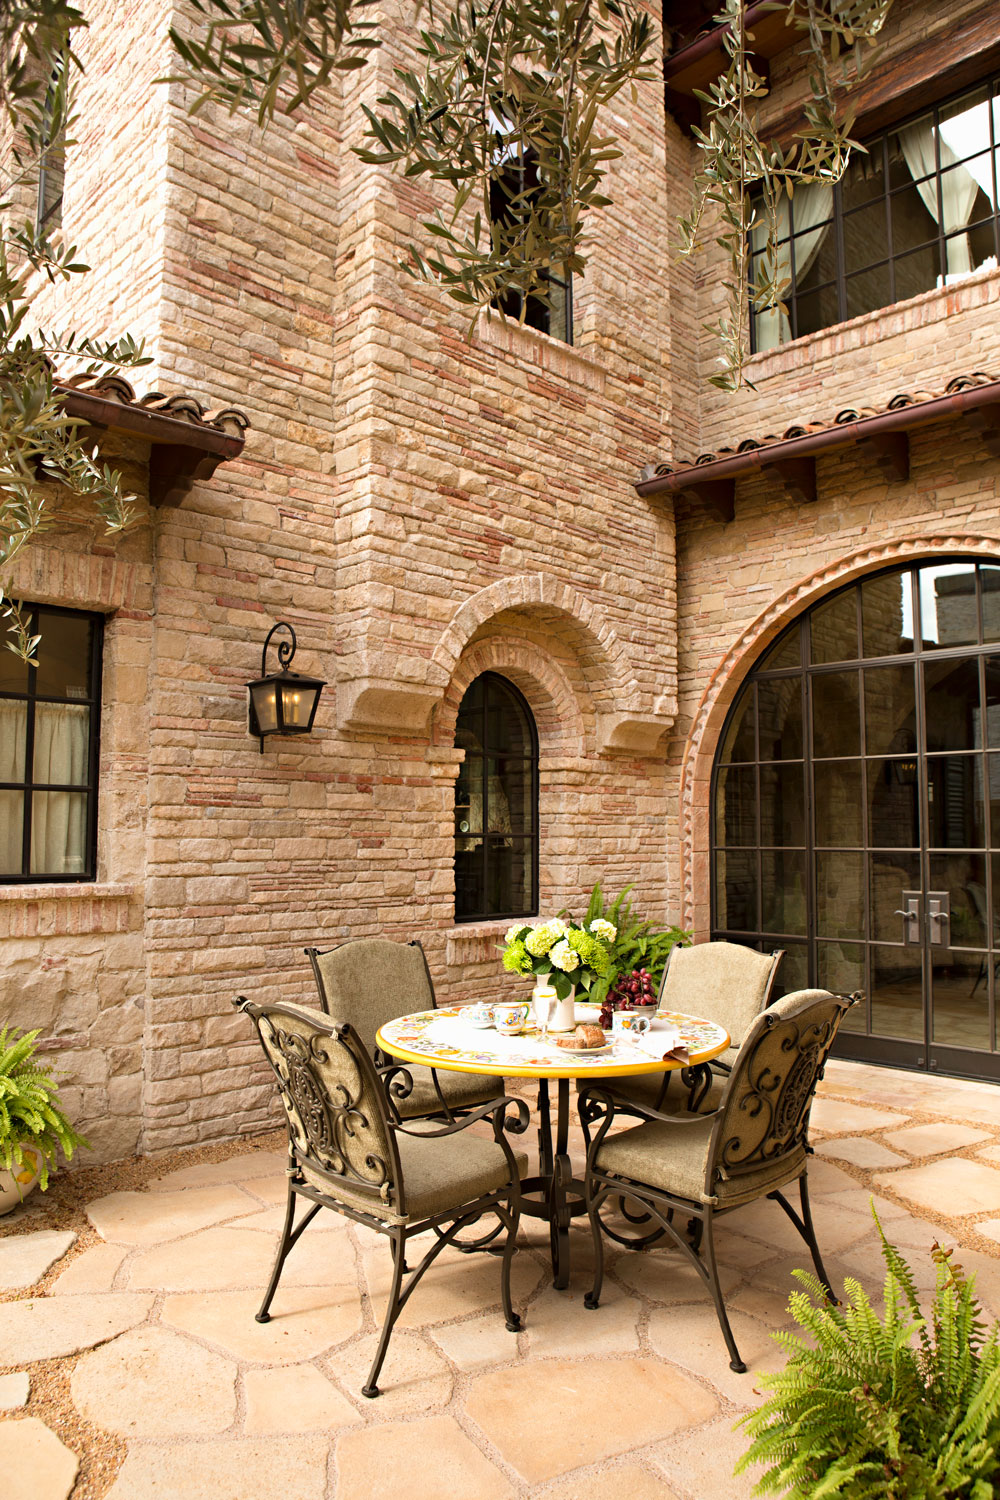 Tuscan-Mediterranean-House-Exterior-Courtyard-Patio-Table-Stone-corbin-reeves.jpg